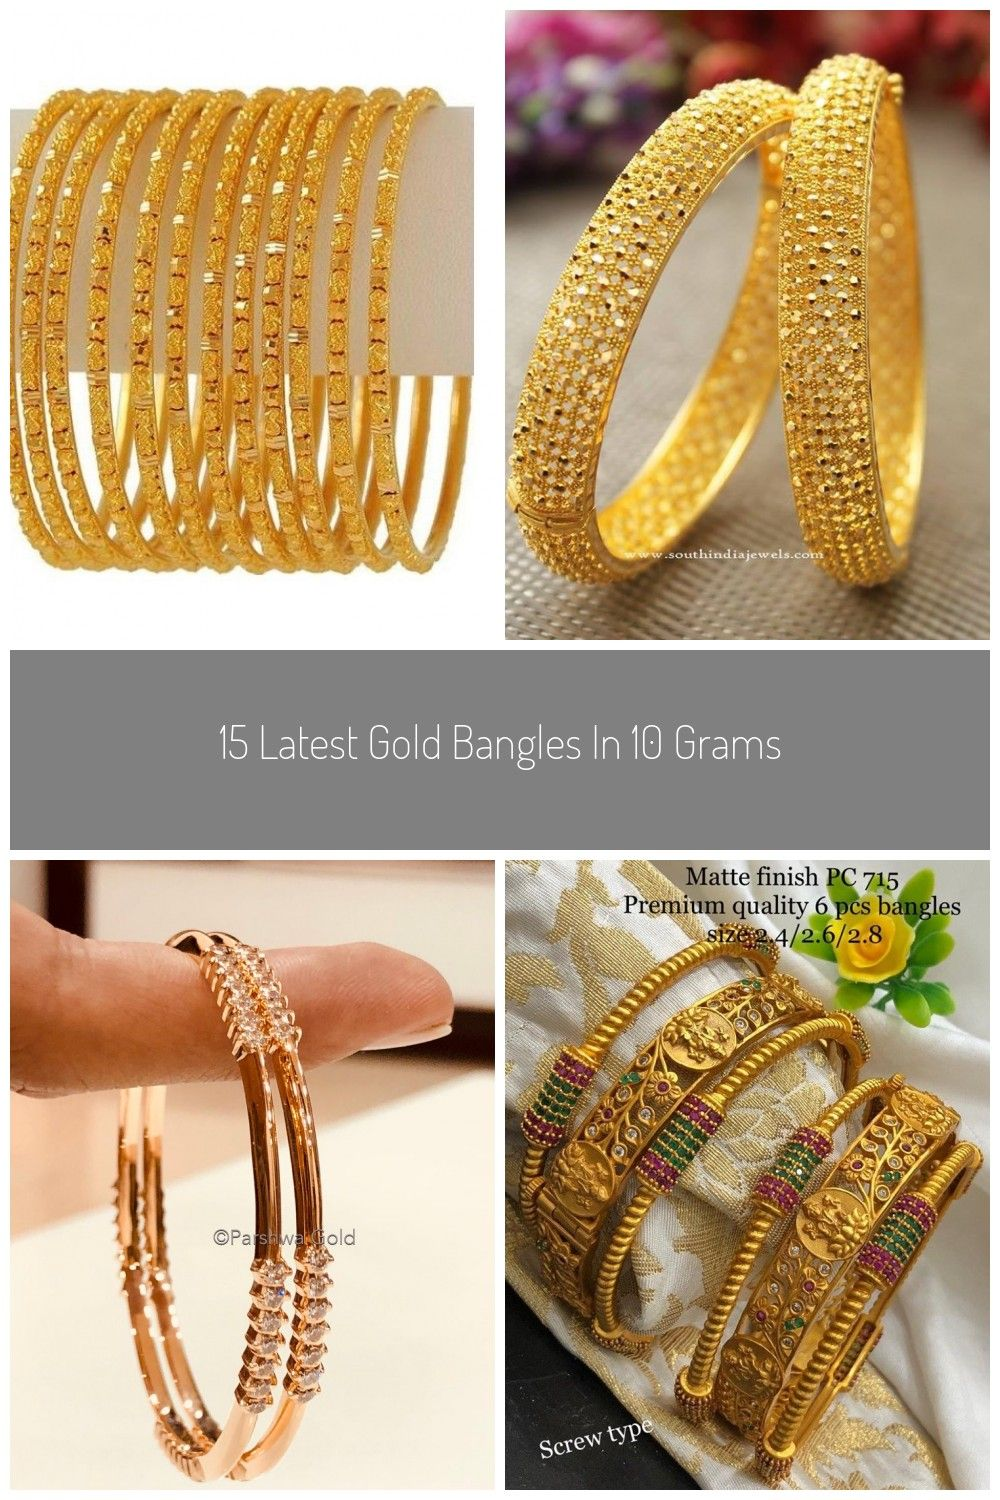 Gold Bangles In 10 Grams Gold Bangles 15 Latest Gold Bangles In 10 Grams Gold Bangles Bangles Gold Cost